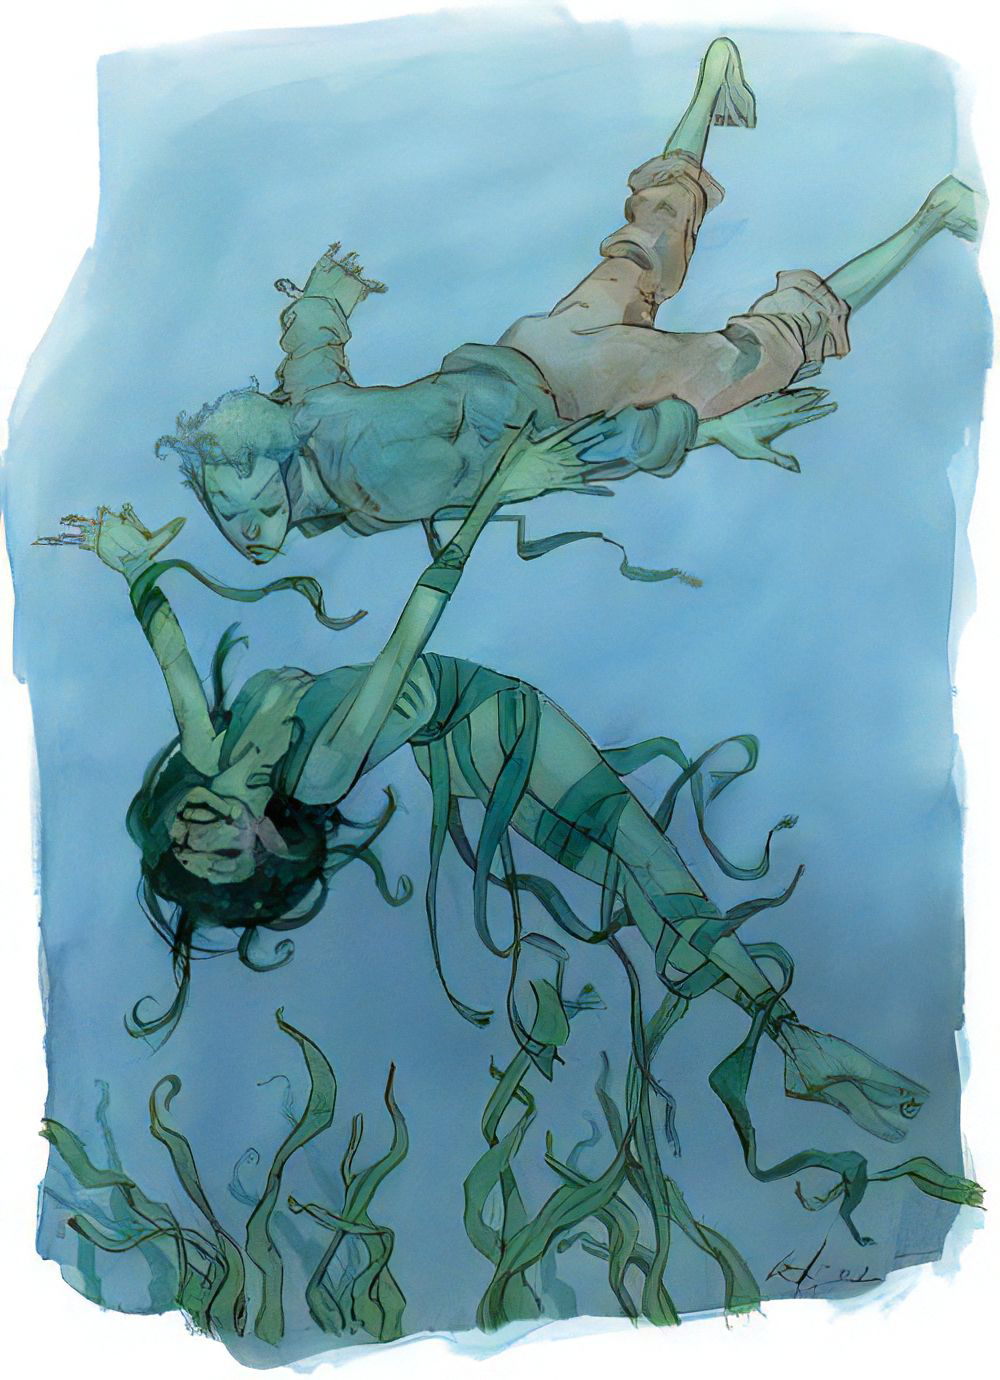 Aquatic elf